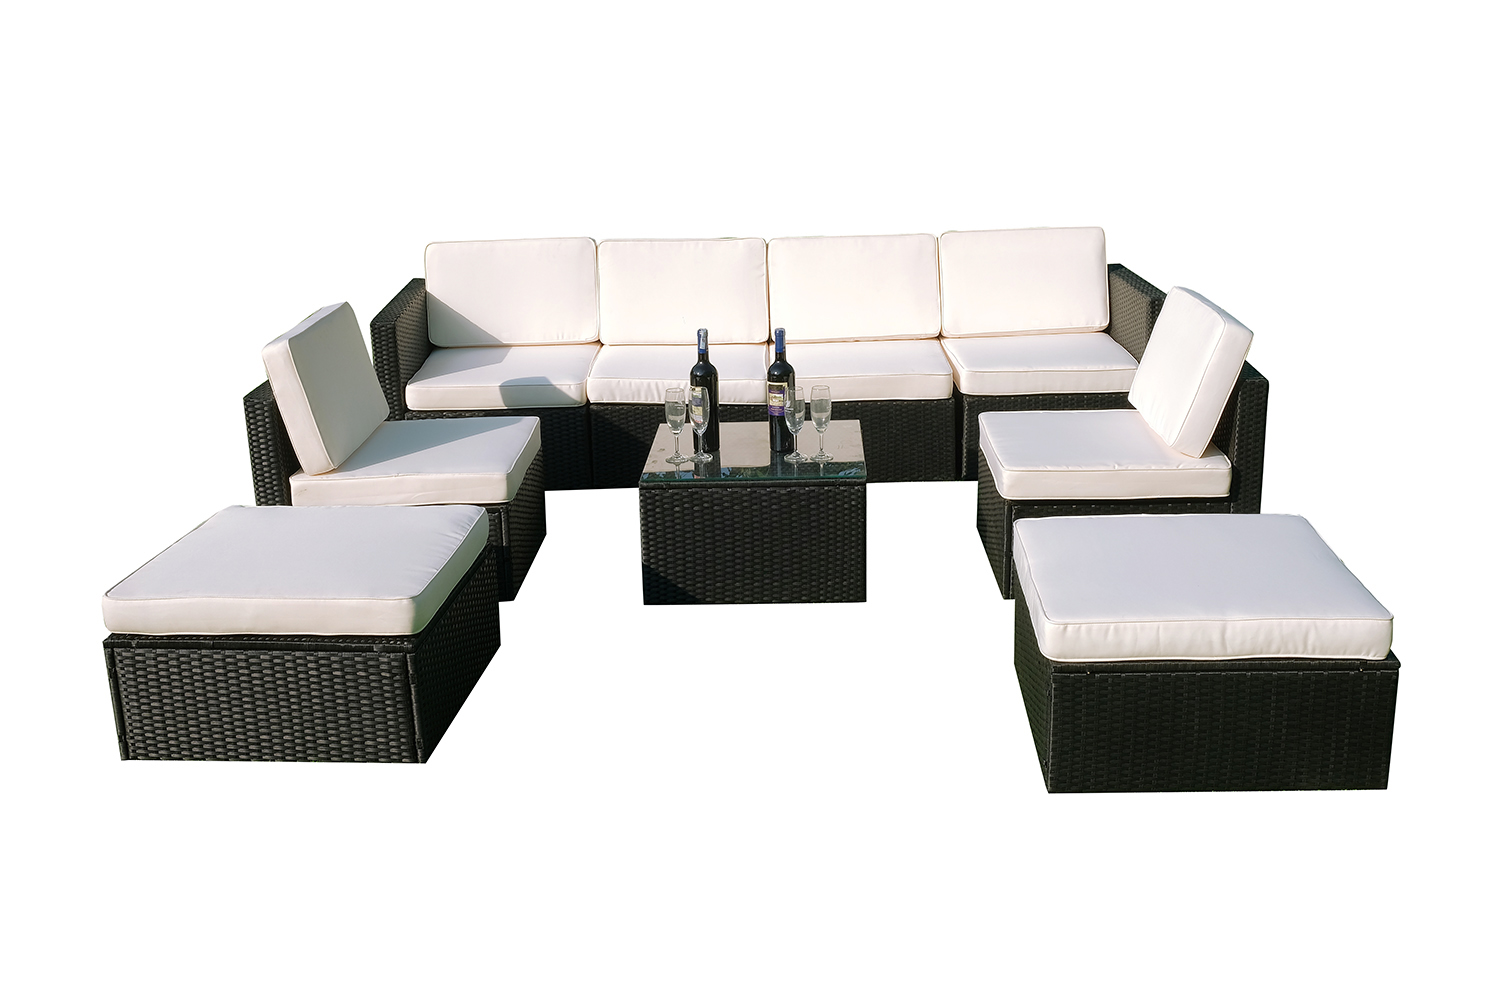 Mcombo 9pcs Black Wicker Patio Sectional Outdoor Sofa Furniture Set 6088 1009 Ebay